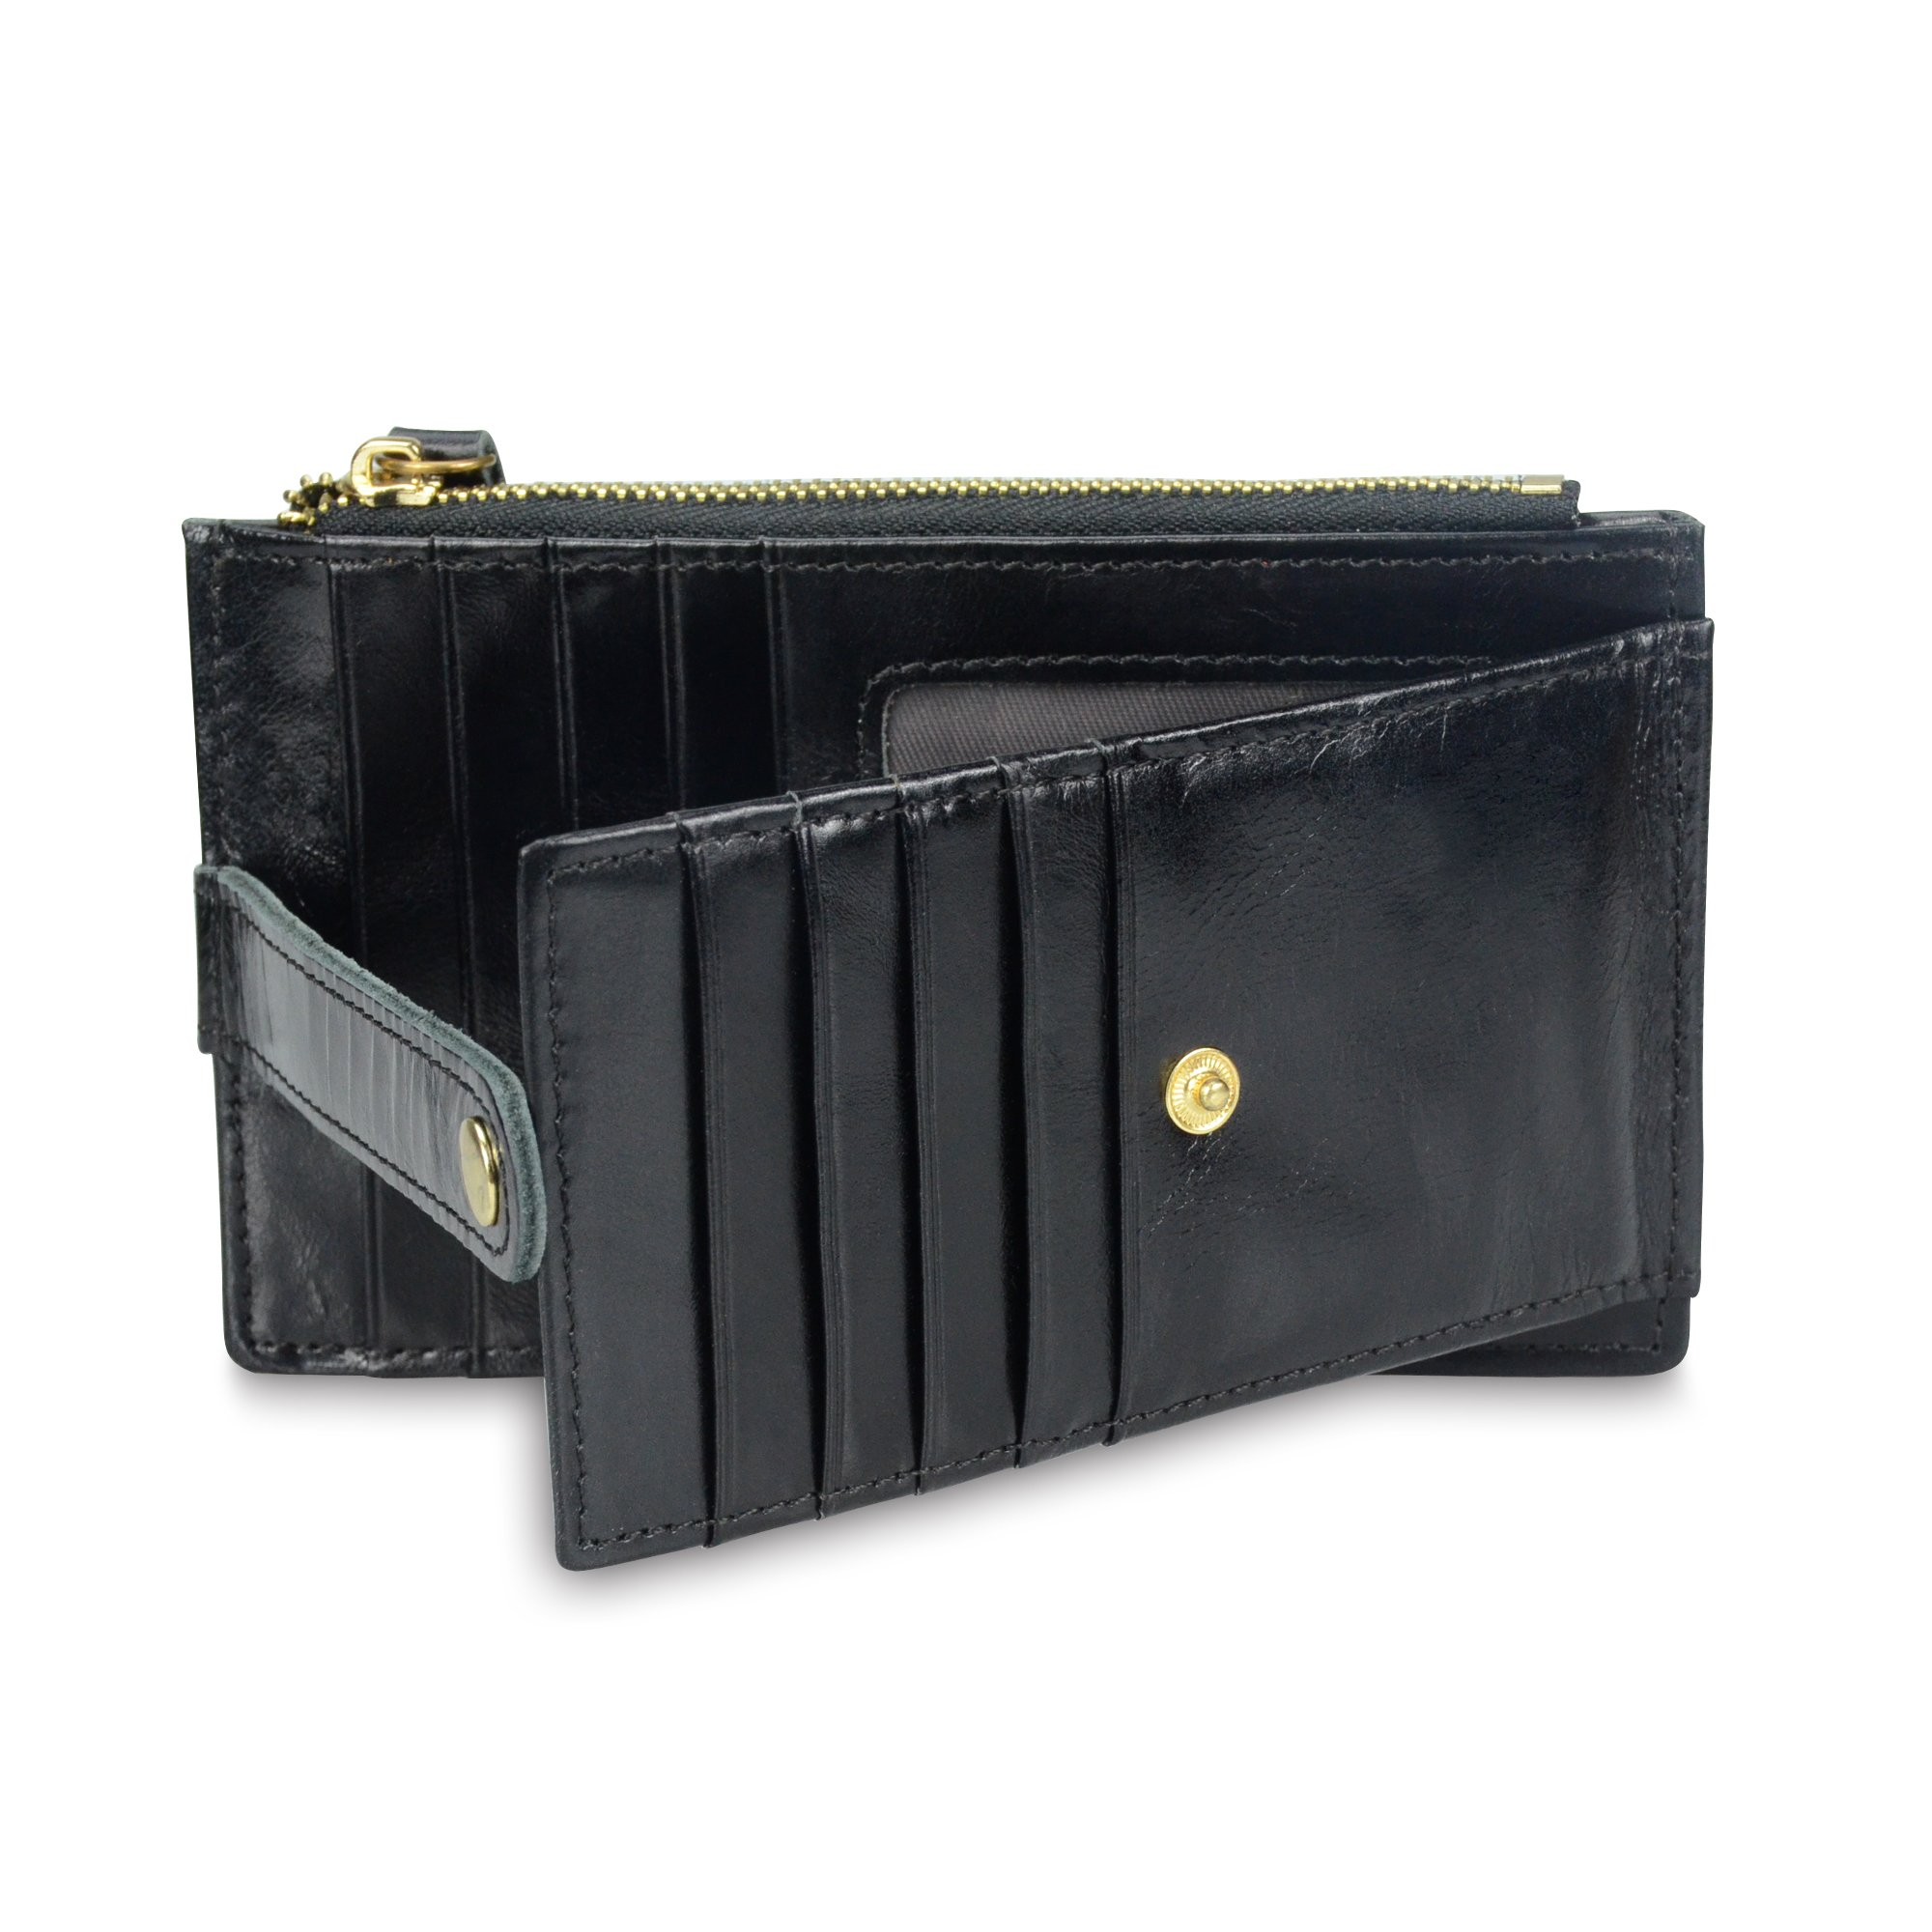 Onstro RFID Blocking Wallets for Women Genuine Leather Multi Credit Card Organizer with ID window